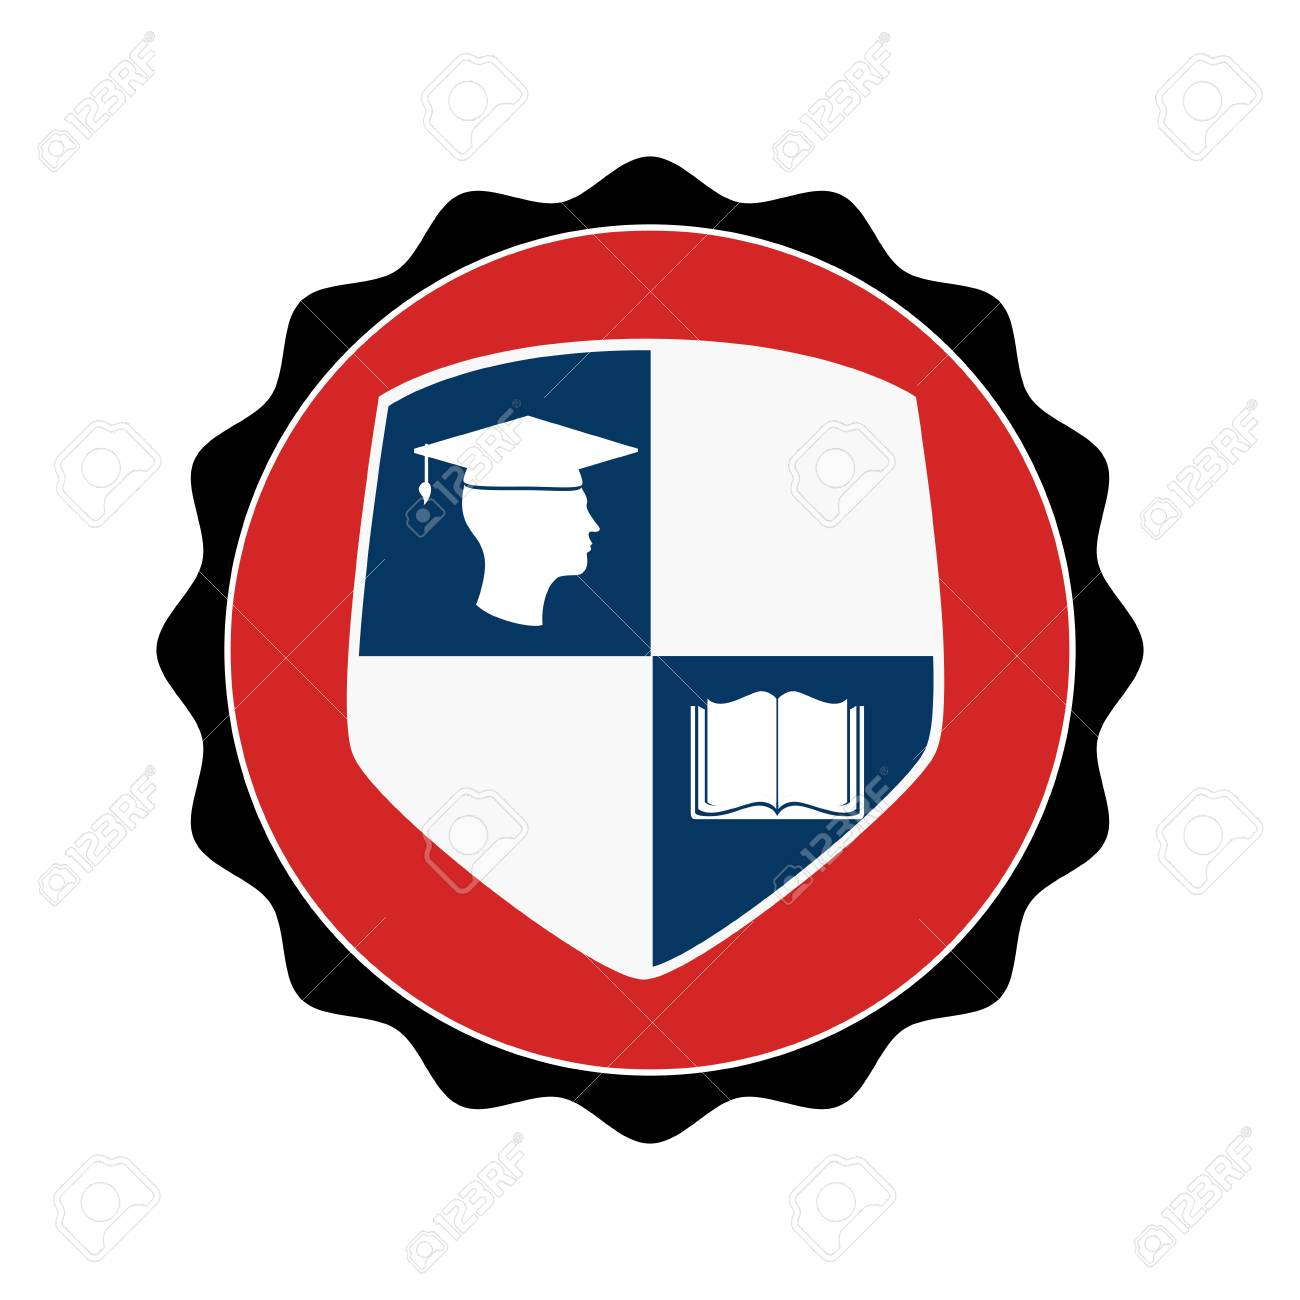 Stamp Circular With Shield Elements Graduation Vector Illustration Stock